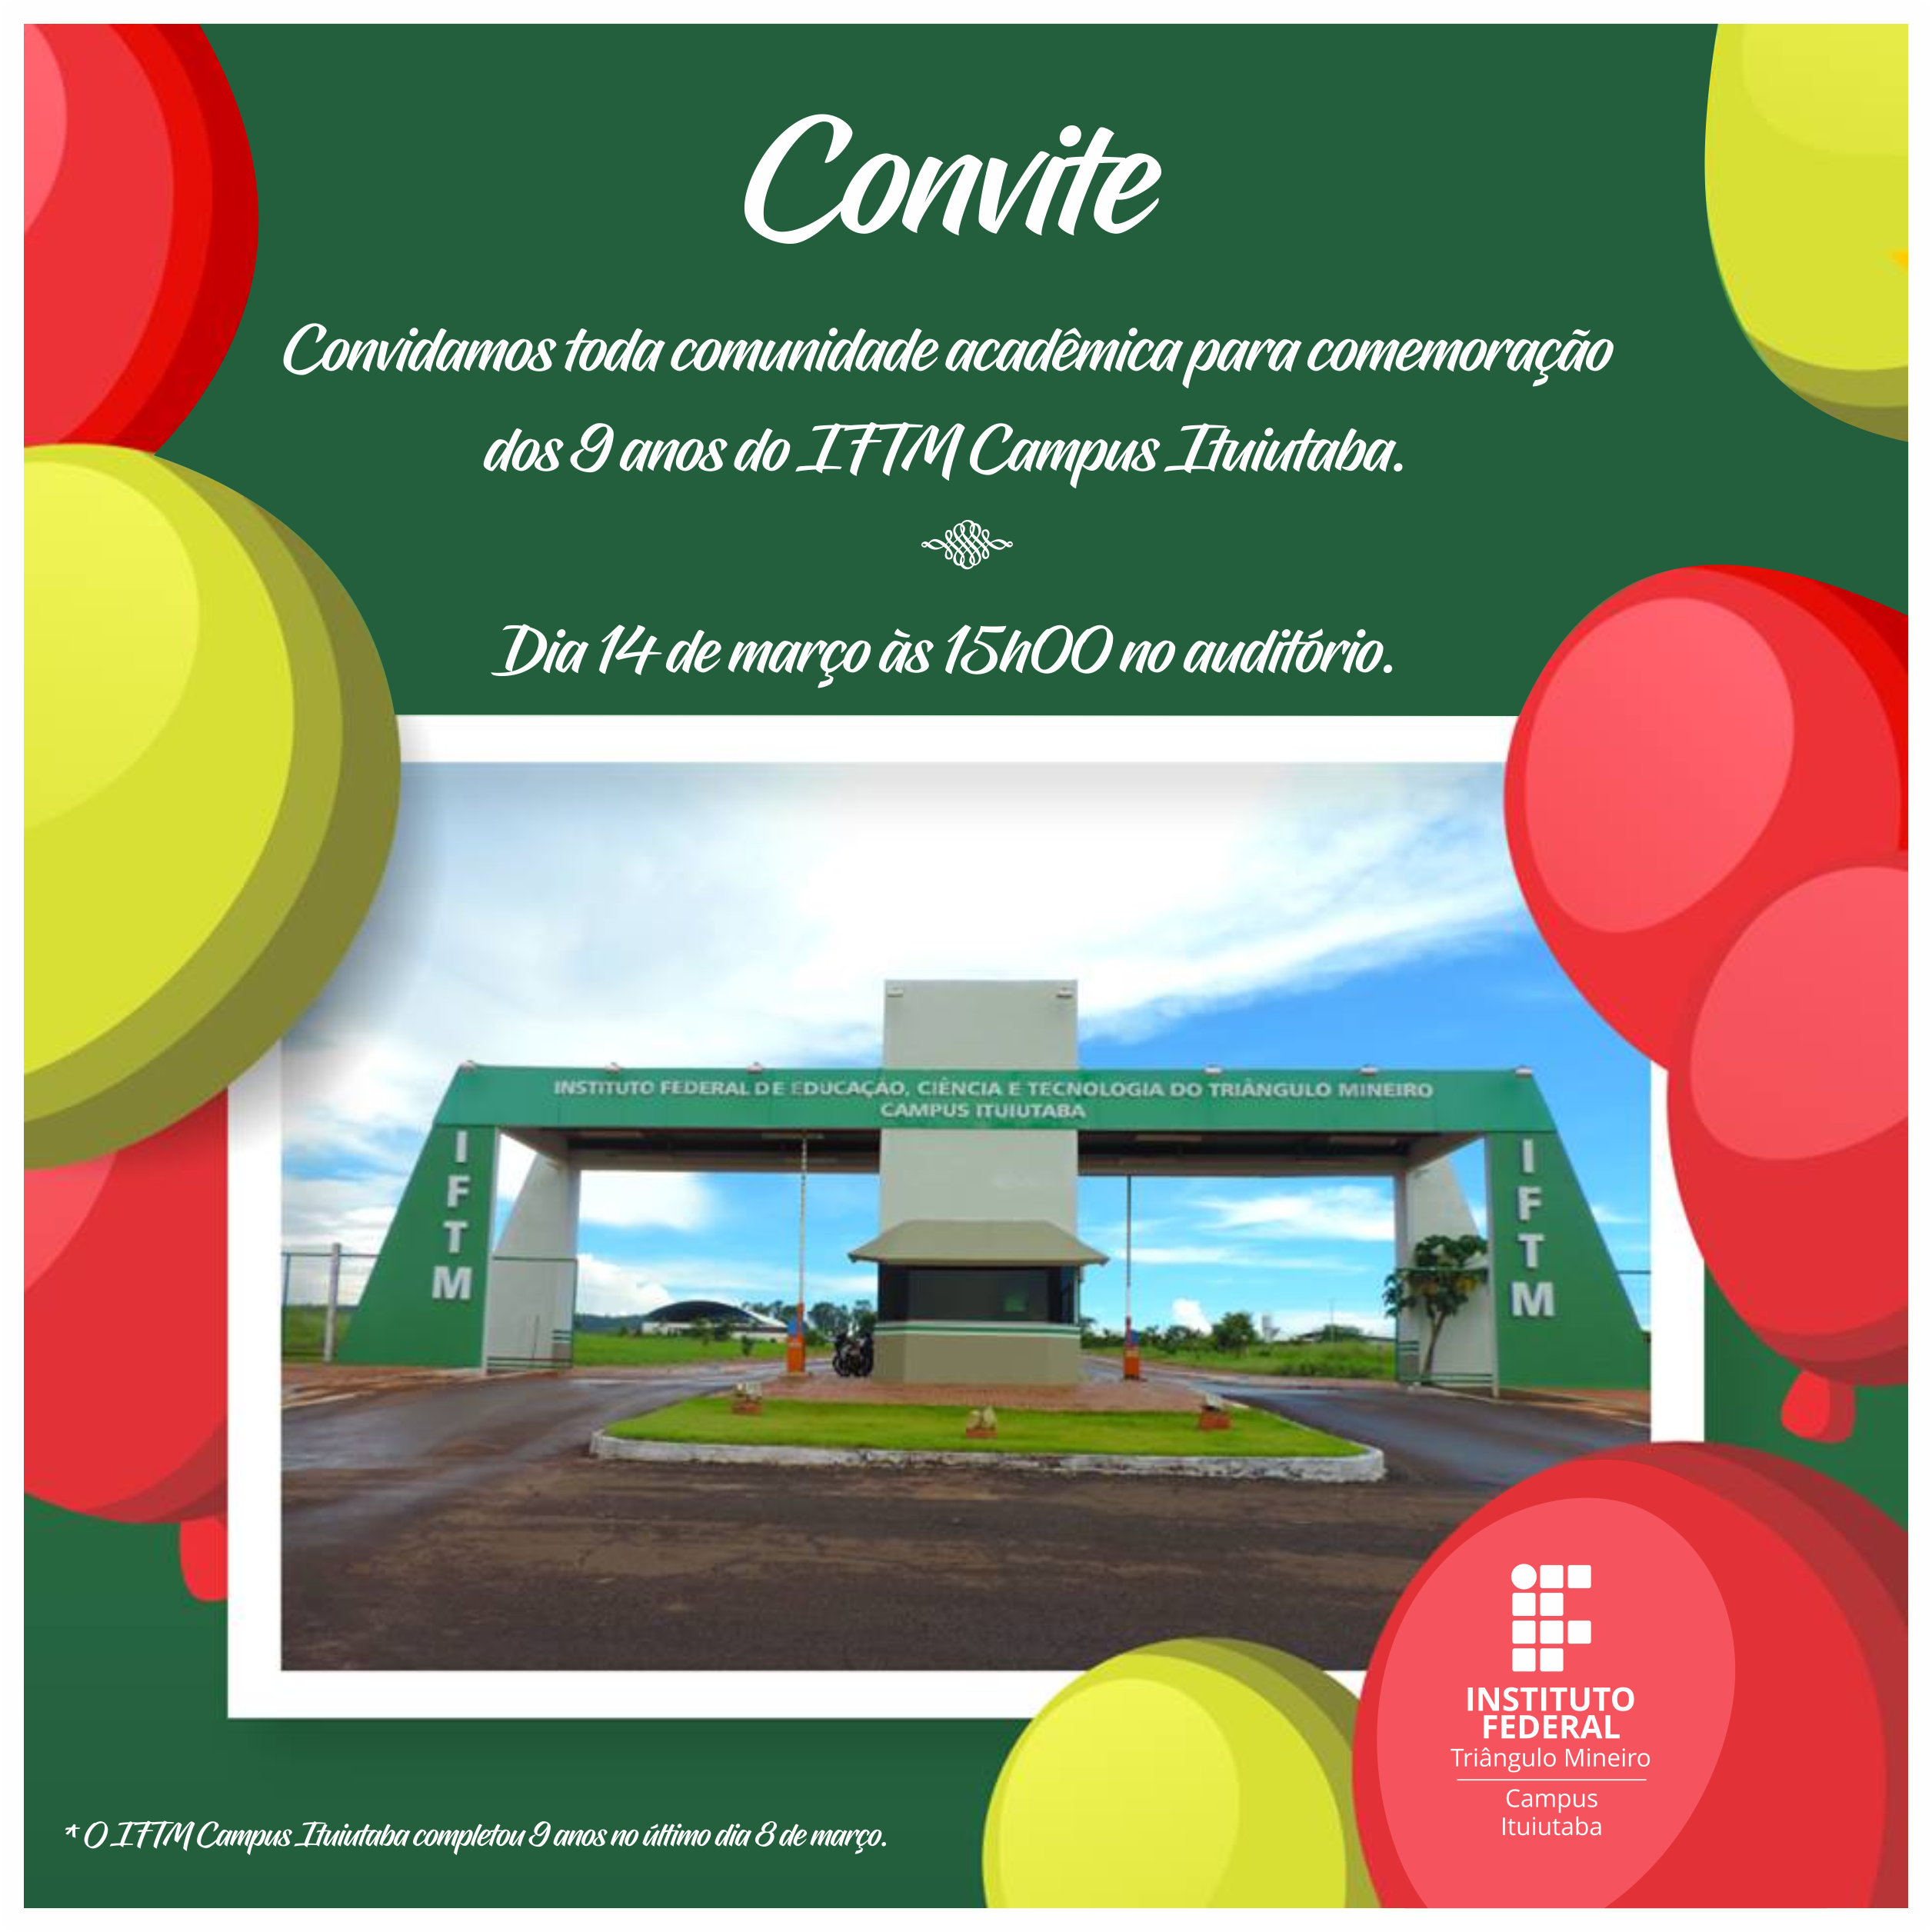 9 anos do IFTM Campus Ituiutaba